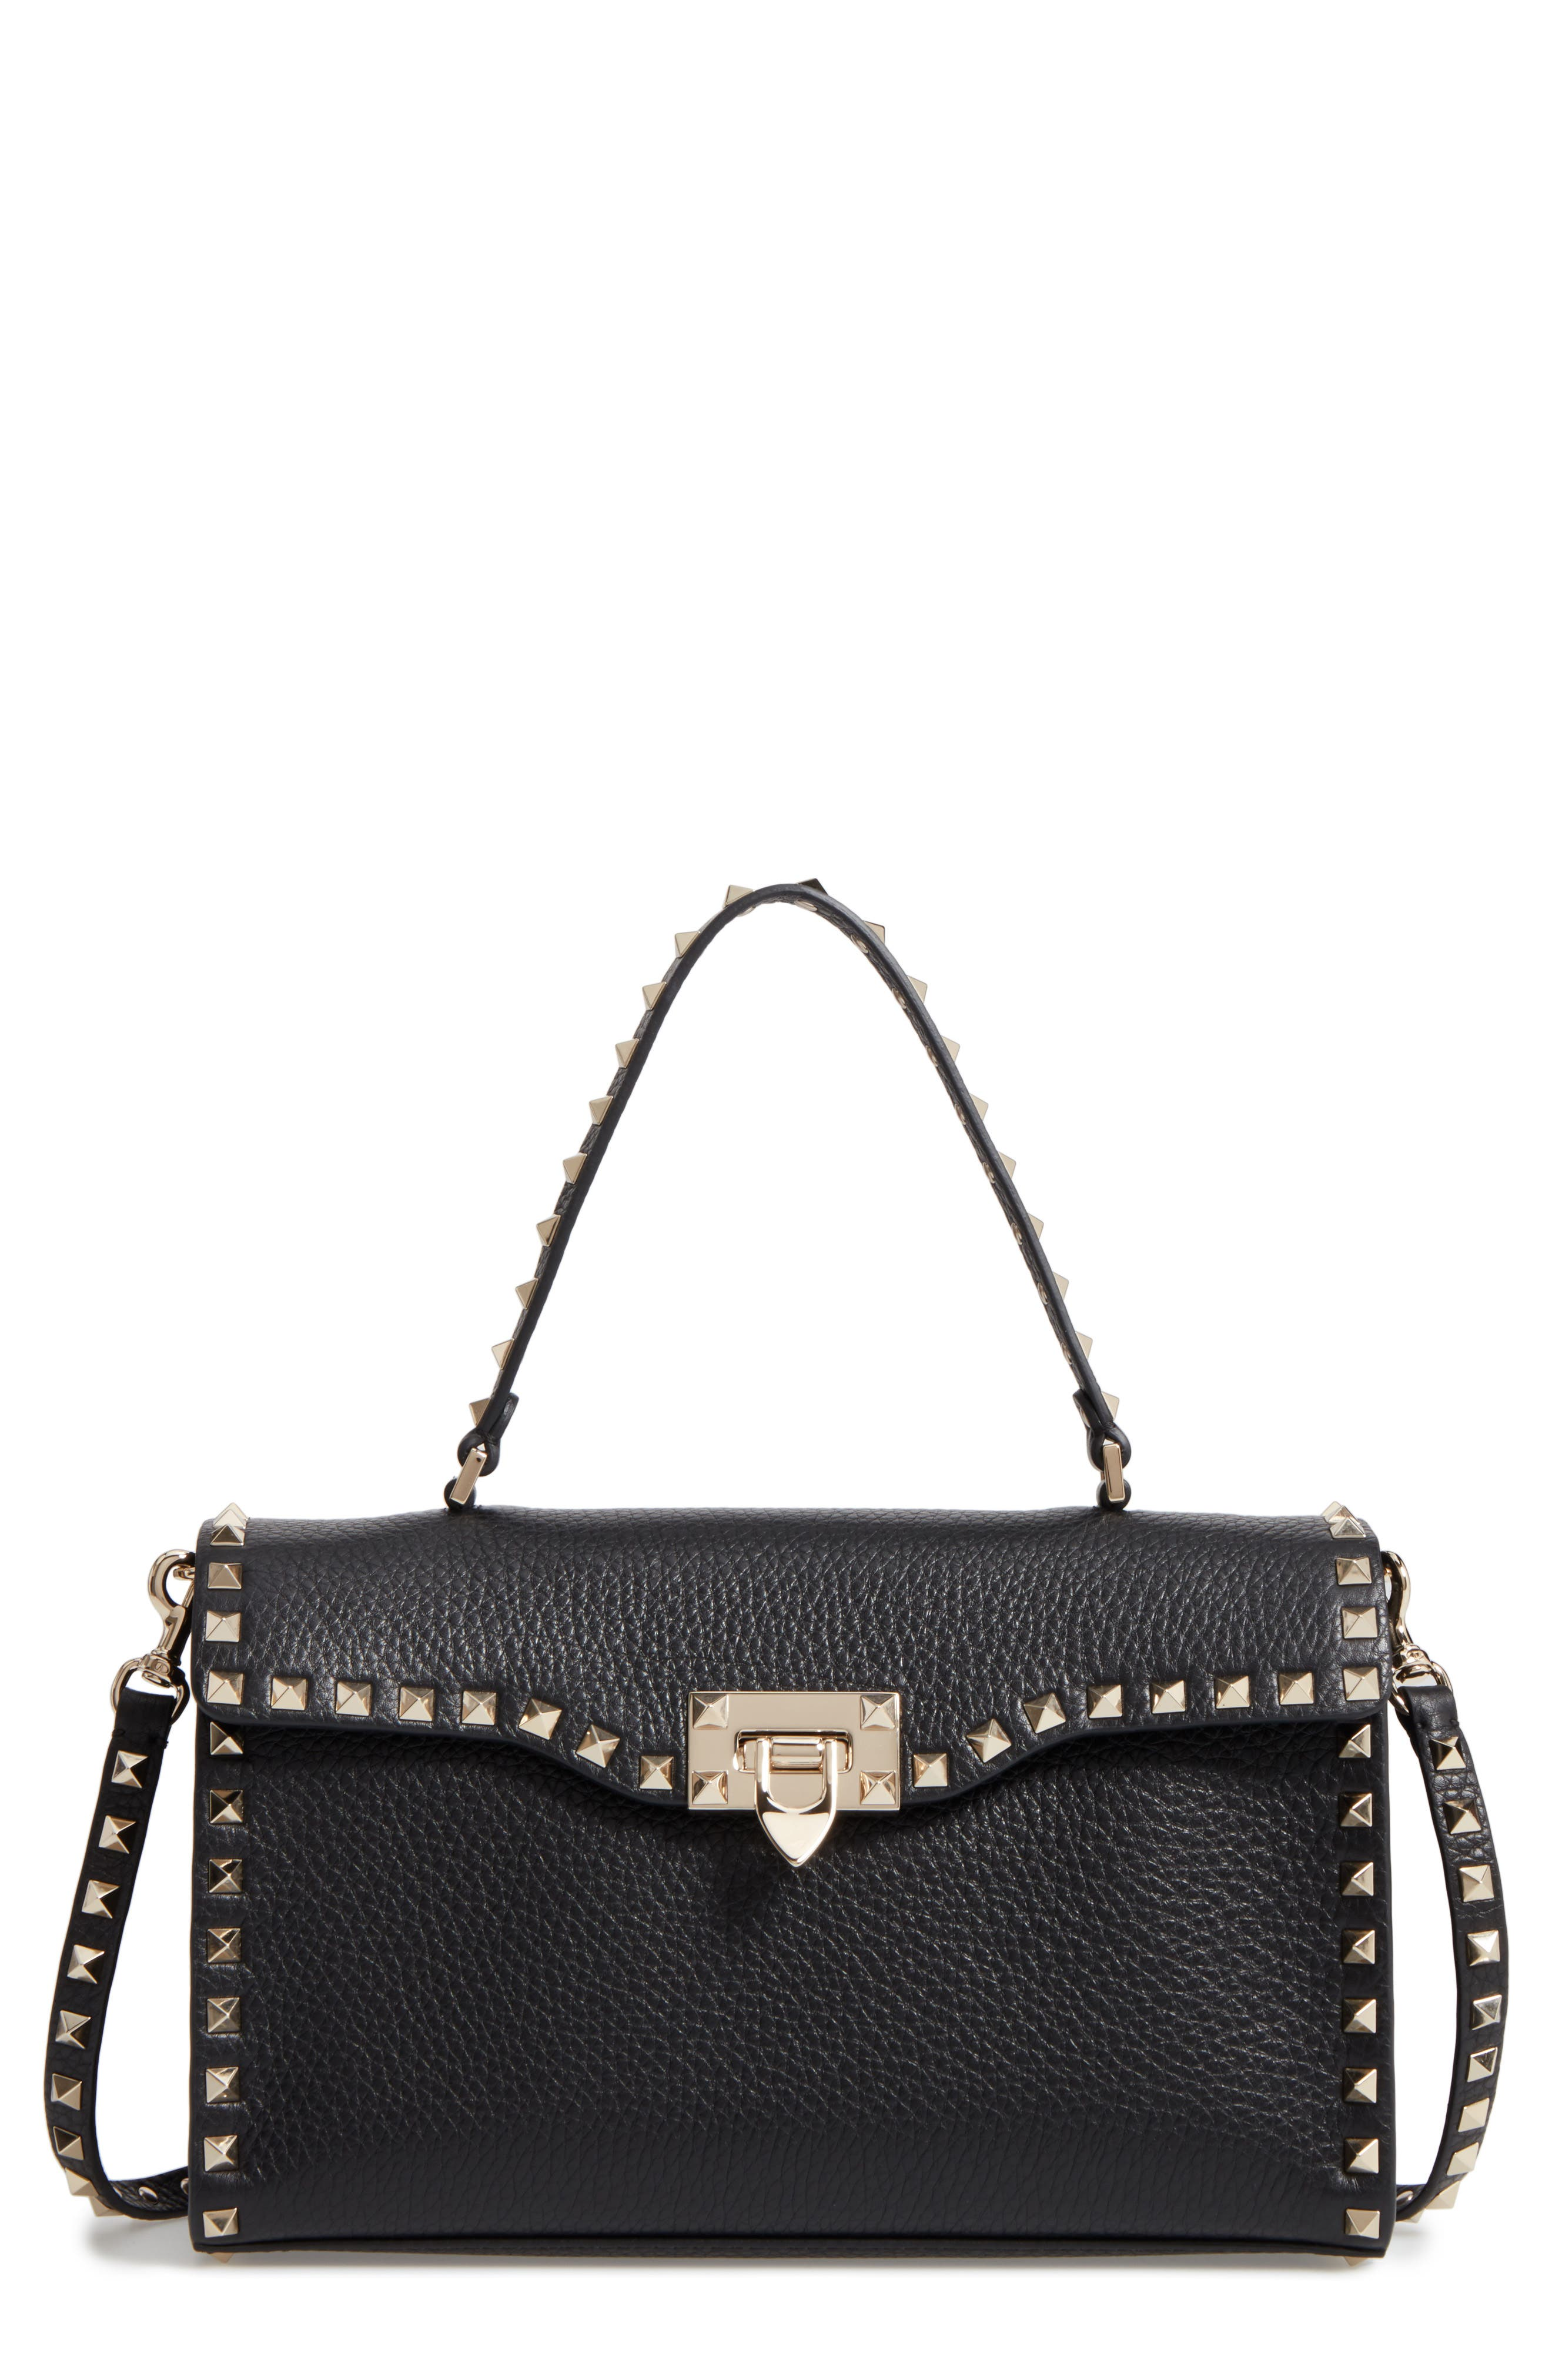 Valentino Rockstud Leather Top Handle Shoulder Bag